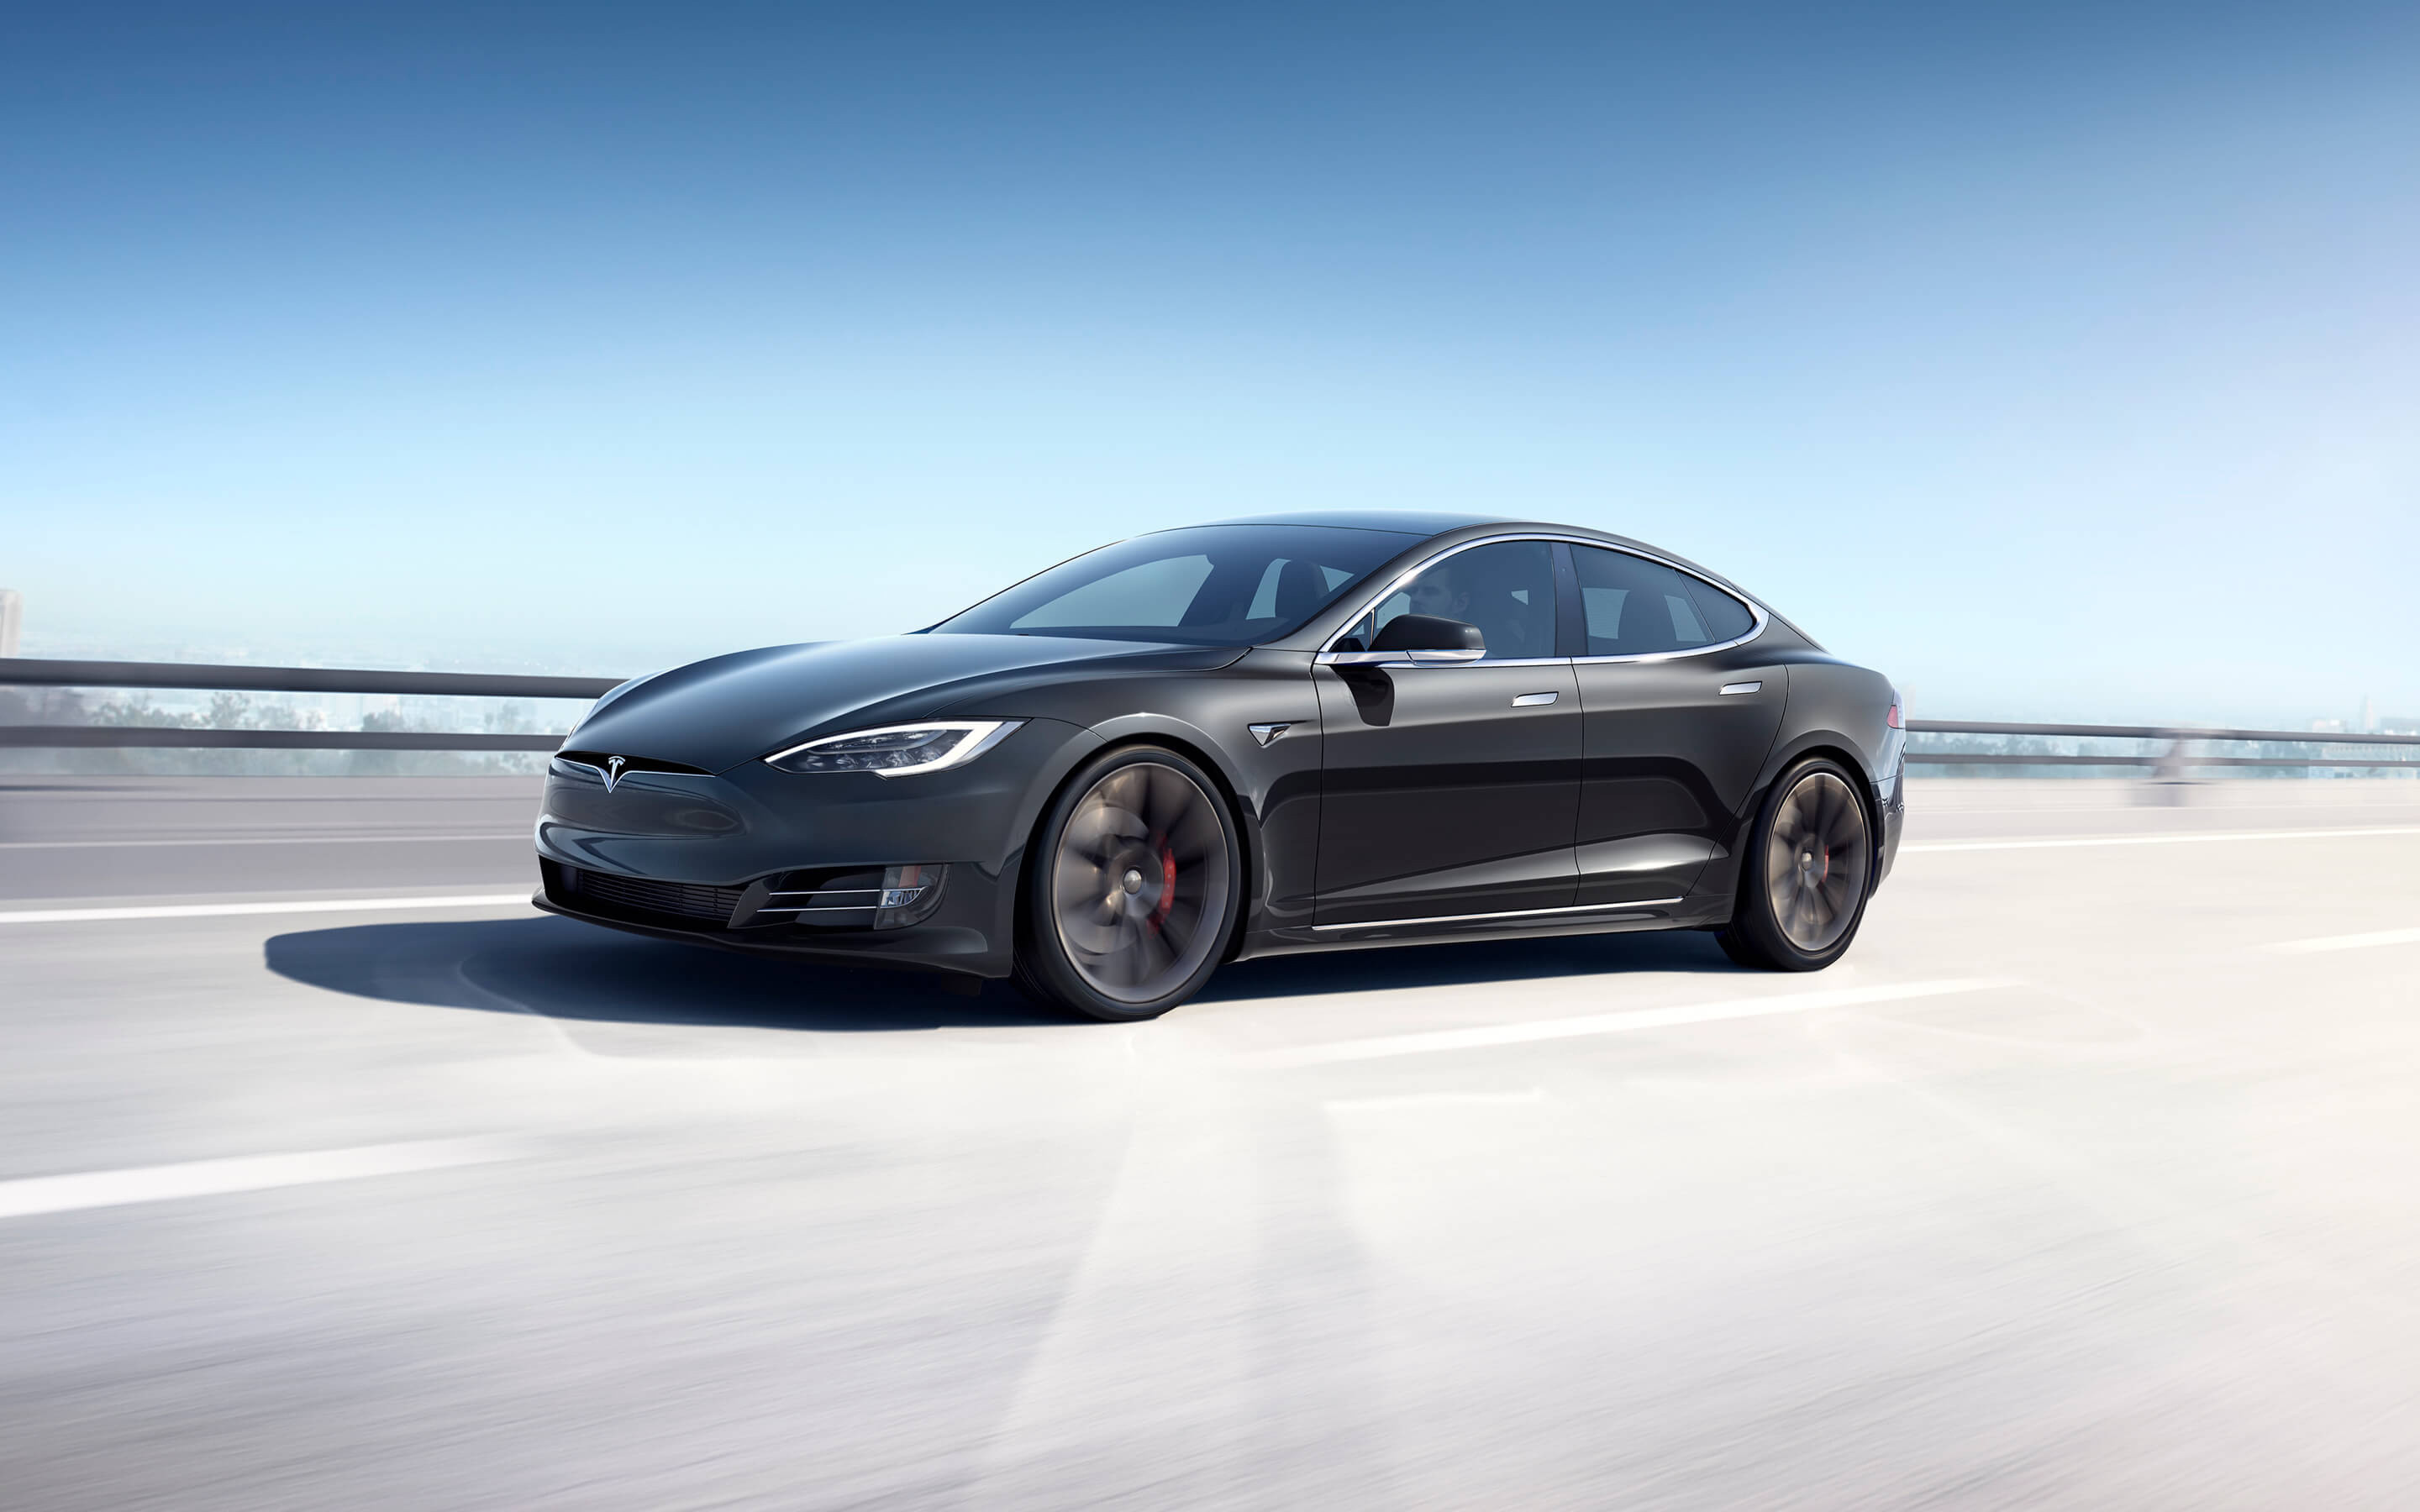 Elon Musk's pricey Tesla electric cars got a bad rap in research by Which?